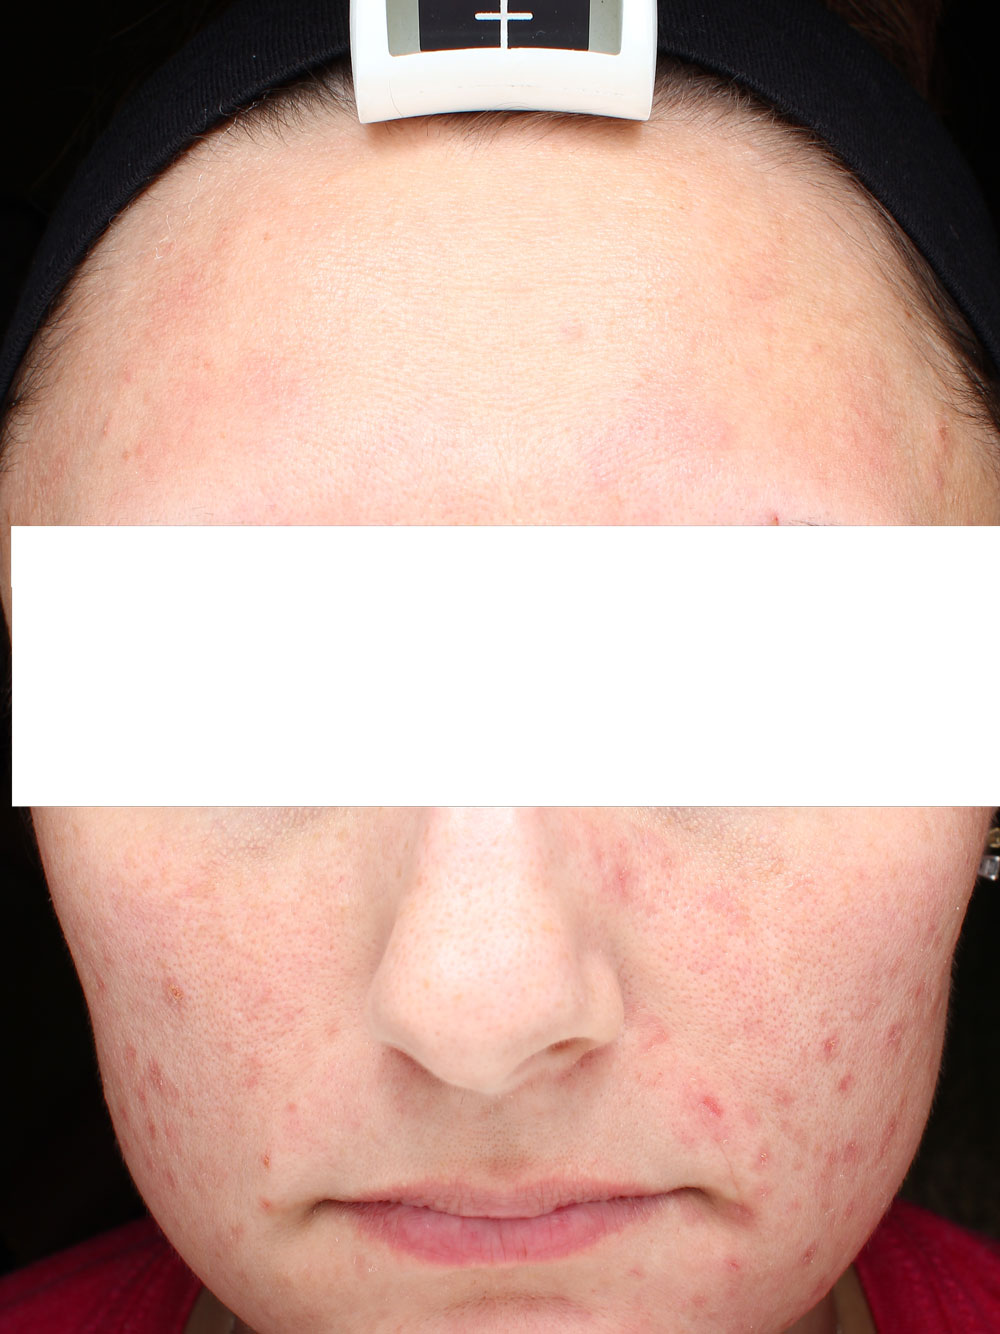 Acne before from treatment before and after procedure provided by Dr. Scott Hernberg of Tomorrow's Wellness Center, NJ's premier med spa.